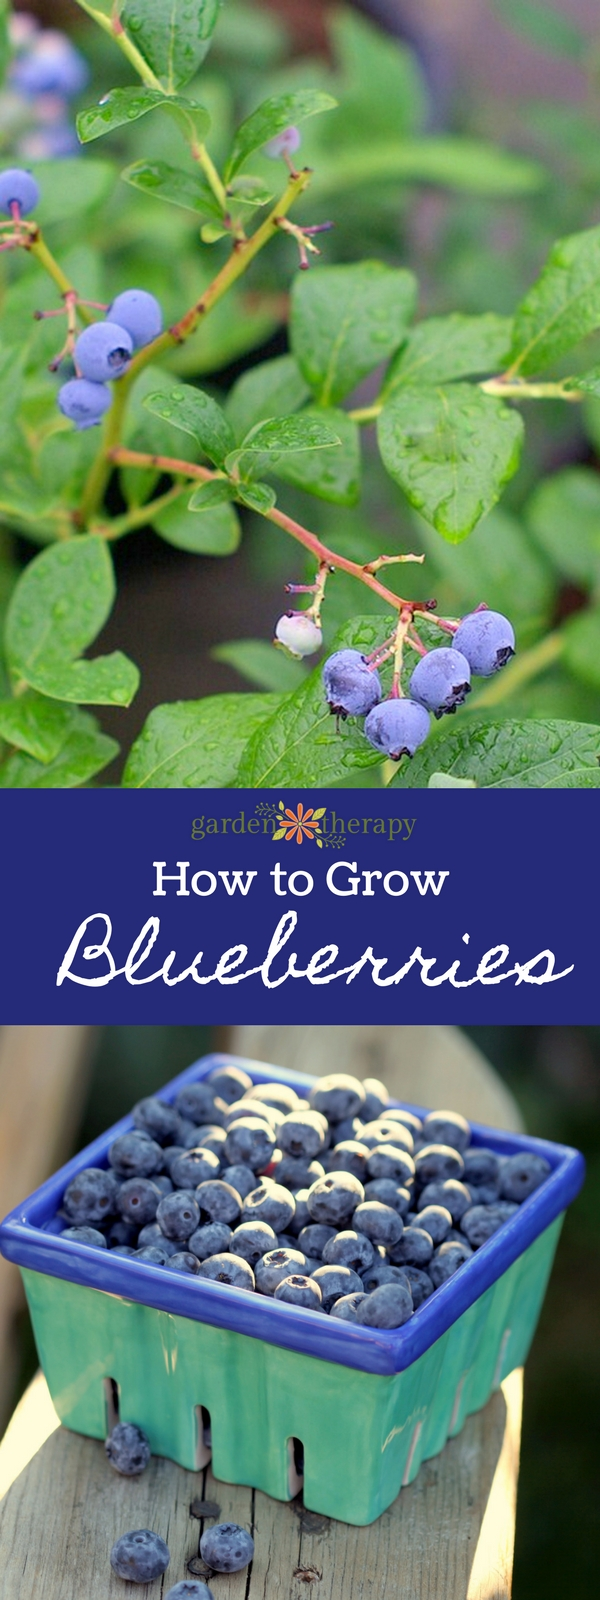 How to Grow Blueberries Organically